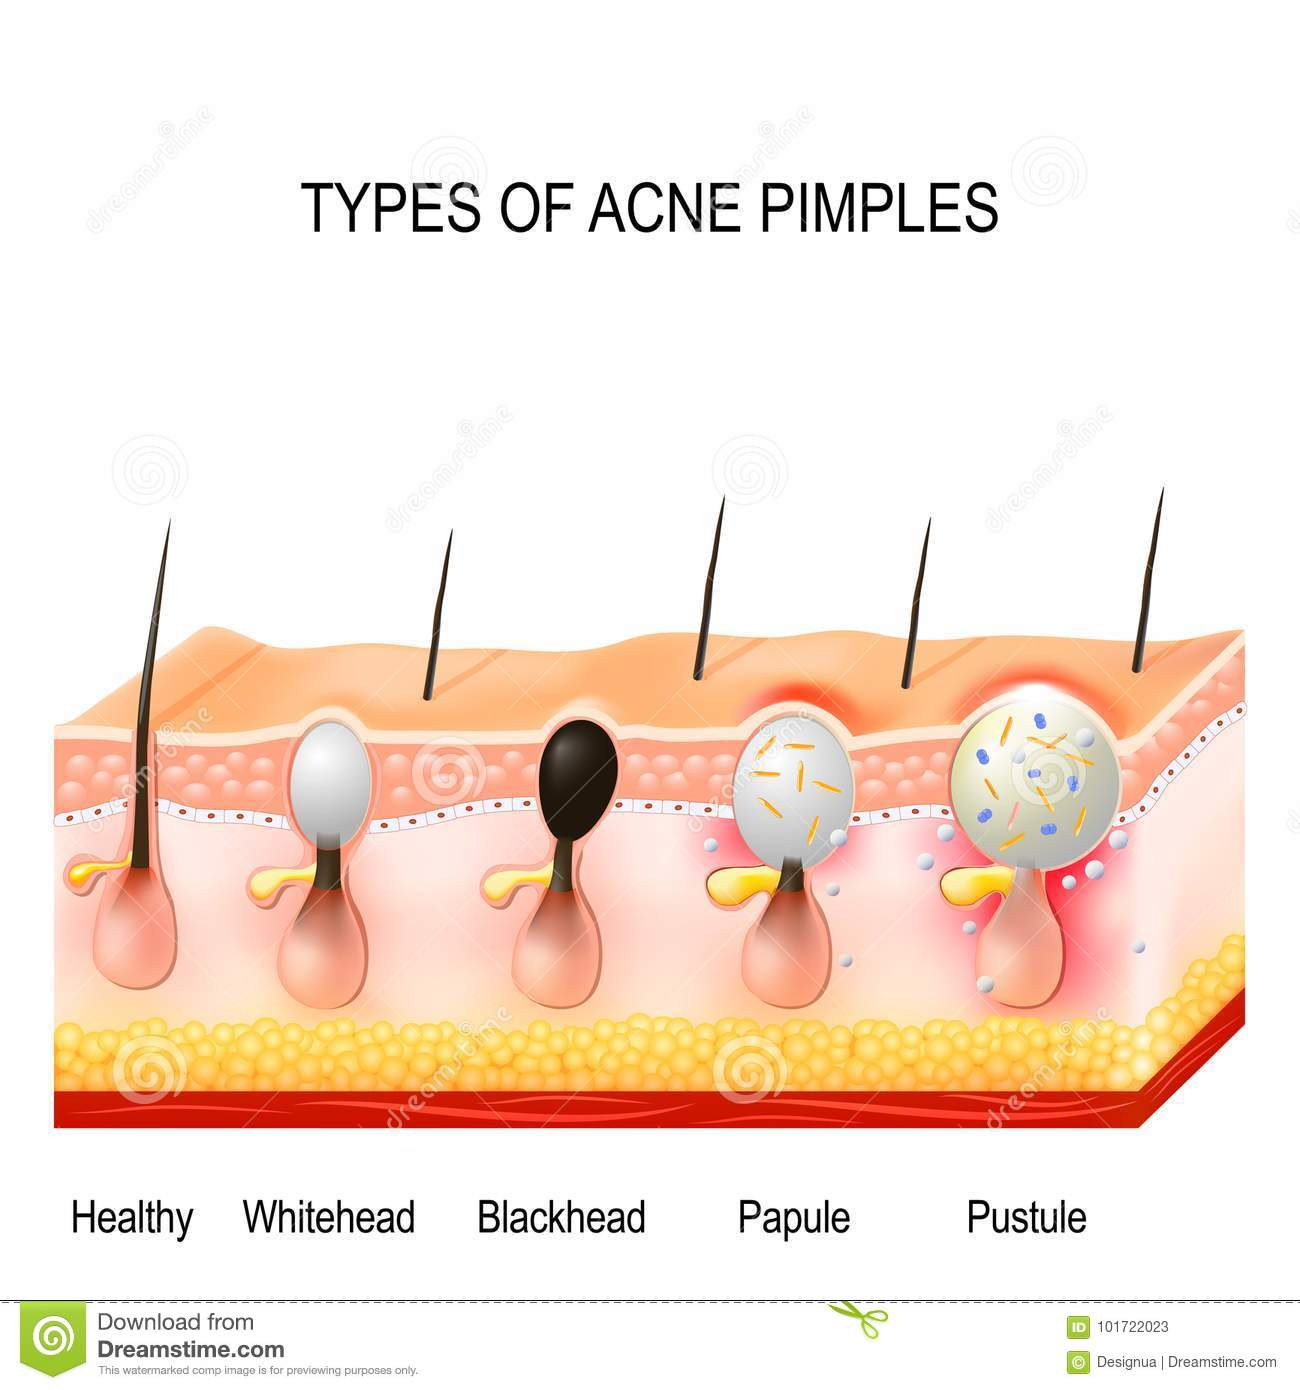 hight resolution of types of acne pimples stock vector illustration of physiology diagram of polio diagrams types of pimples